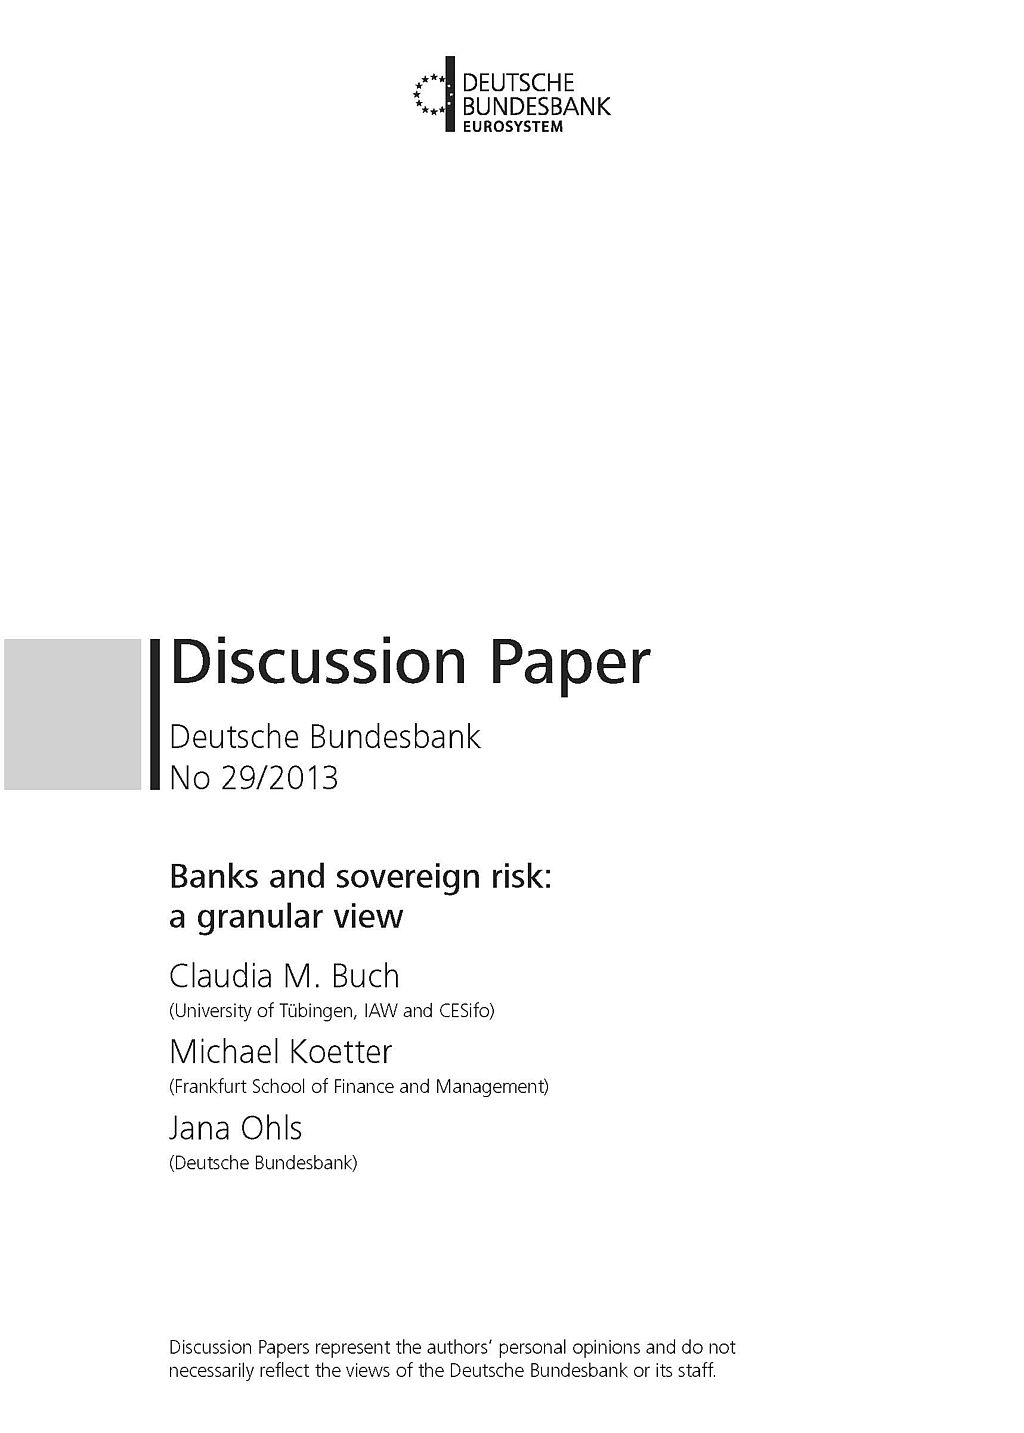 cover_Deutsche-Bundesbank-Discussion-Paper_2013-29.jpg